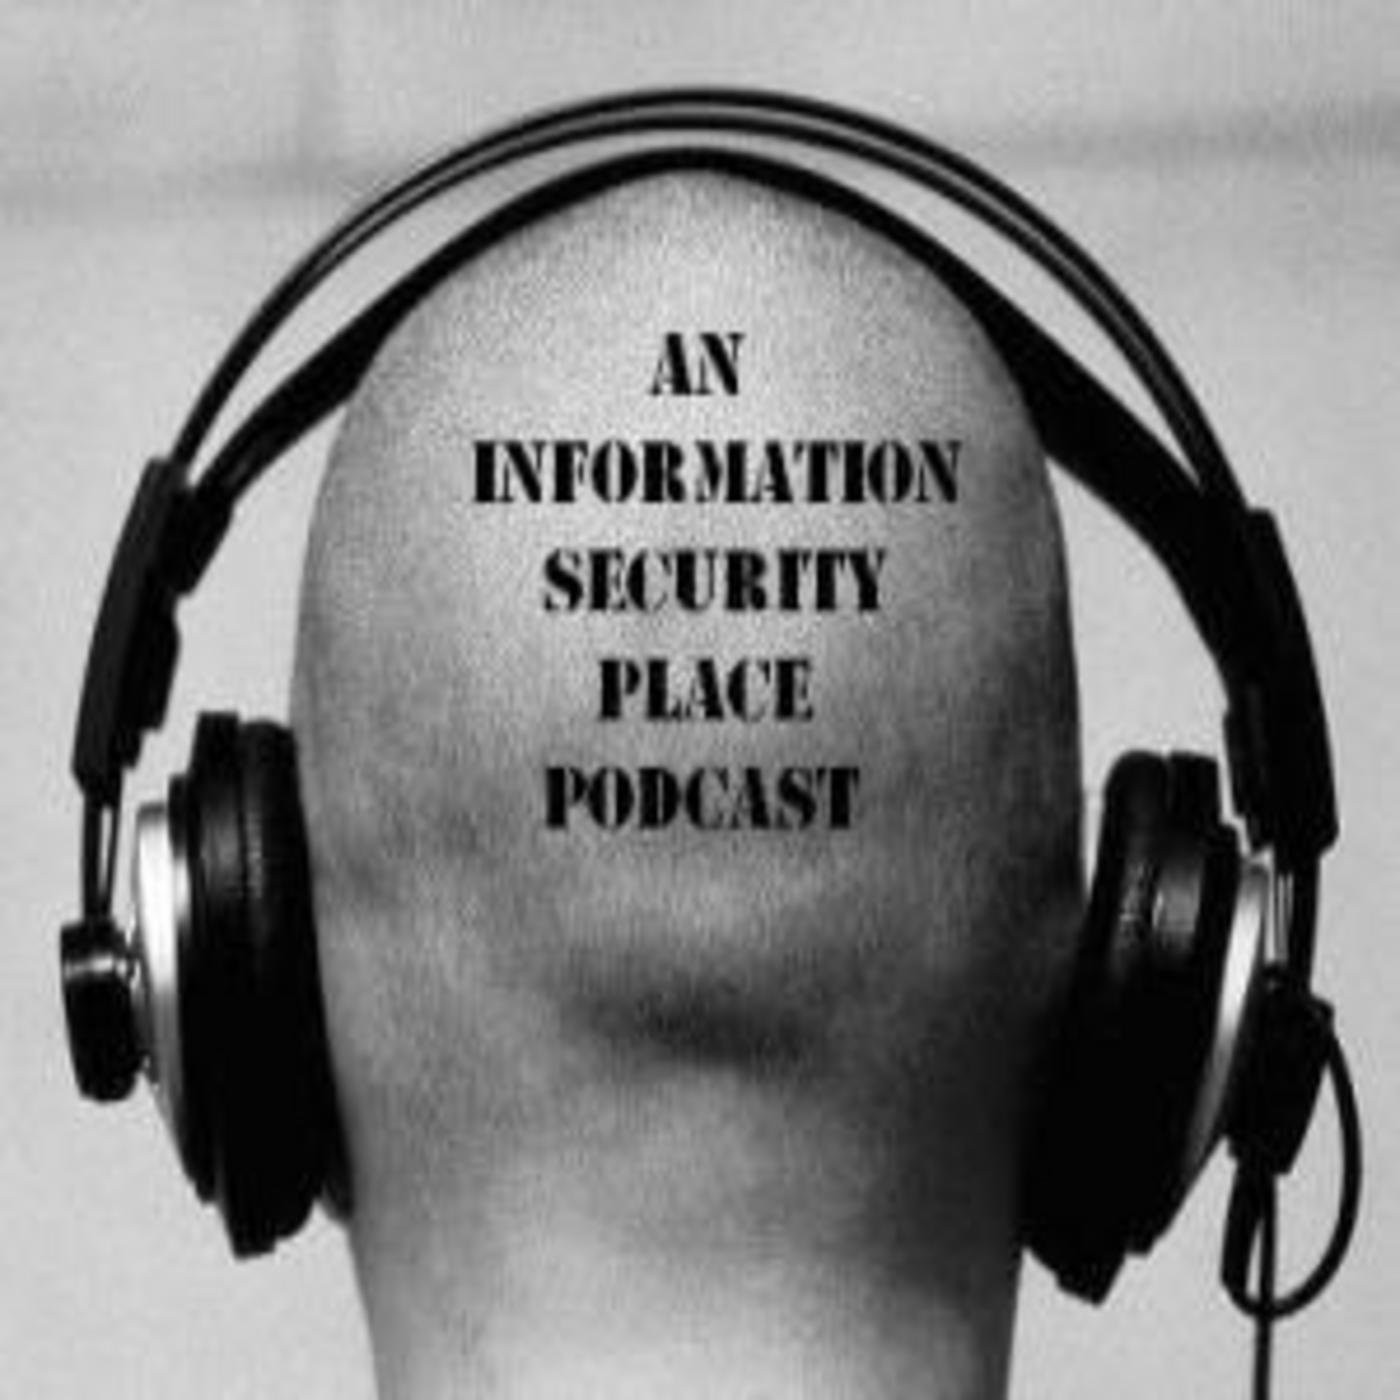 An Information Security Place Podcast – 01-22-14